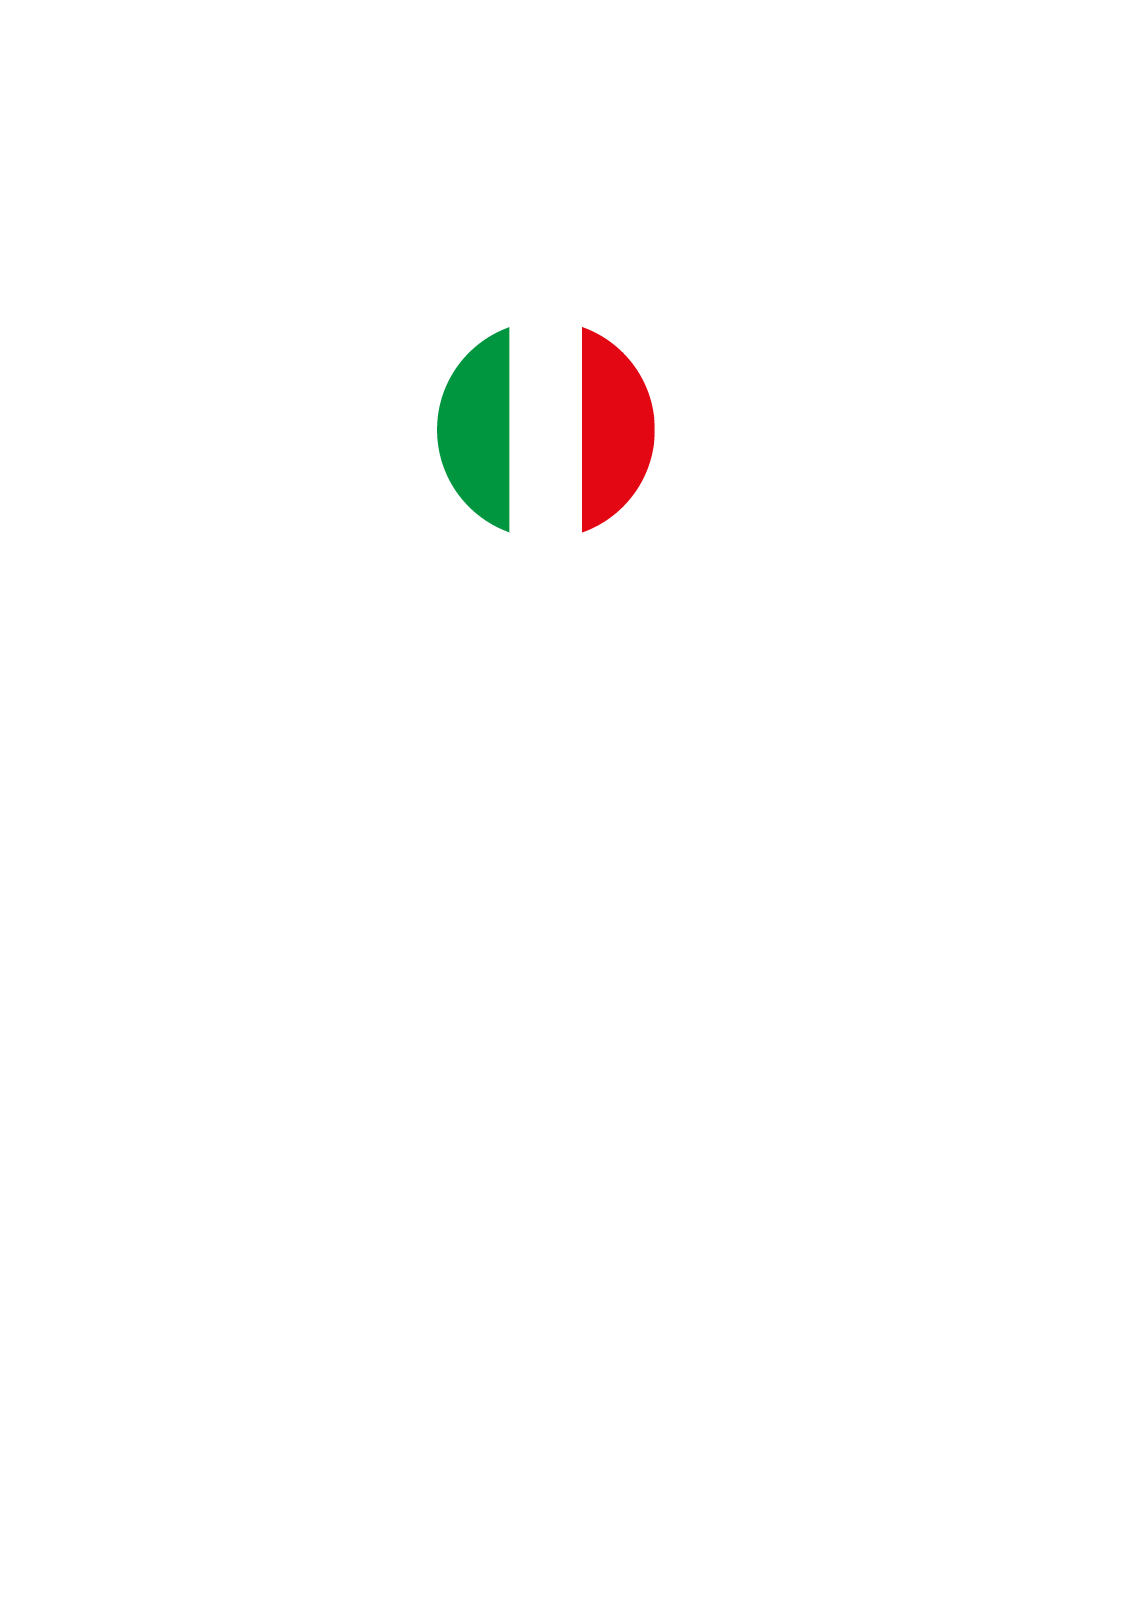 Italy | Cars & Coffee